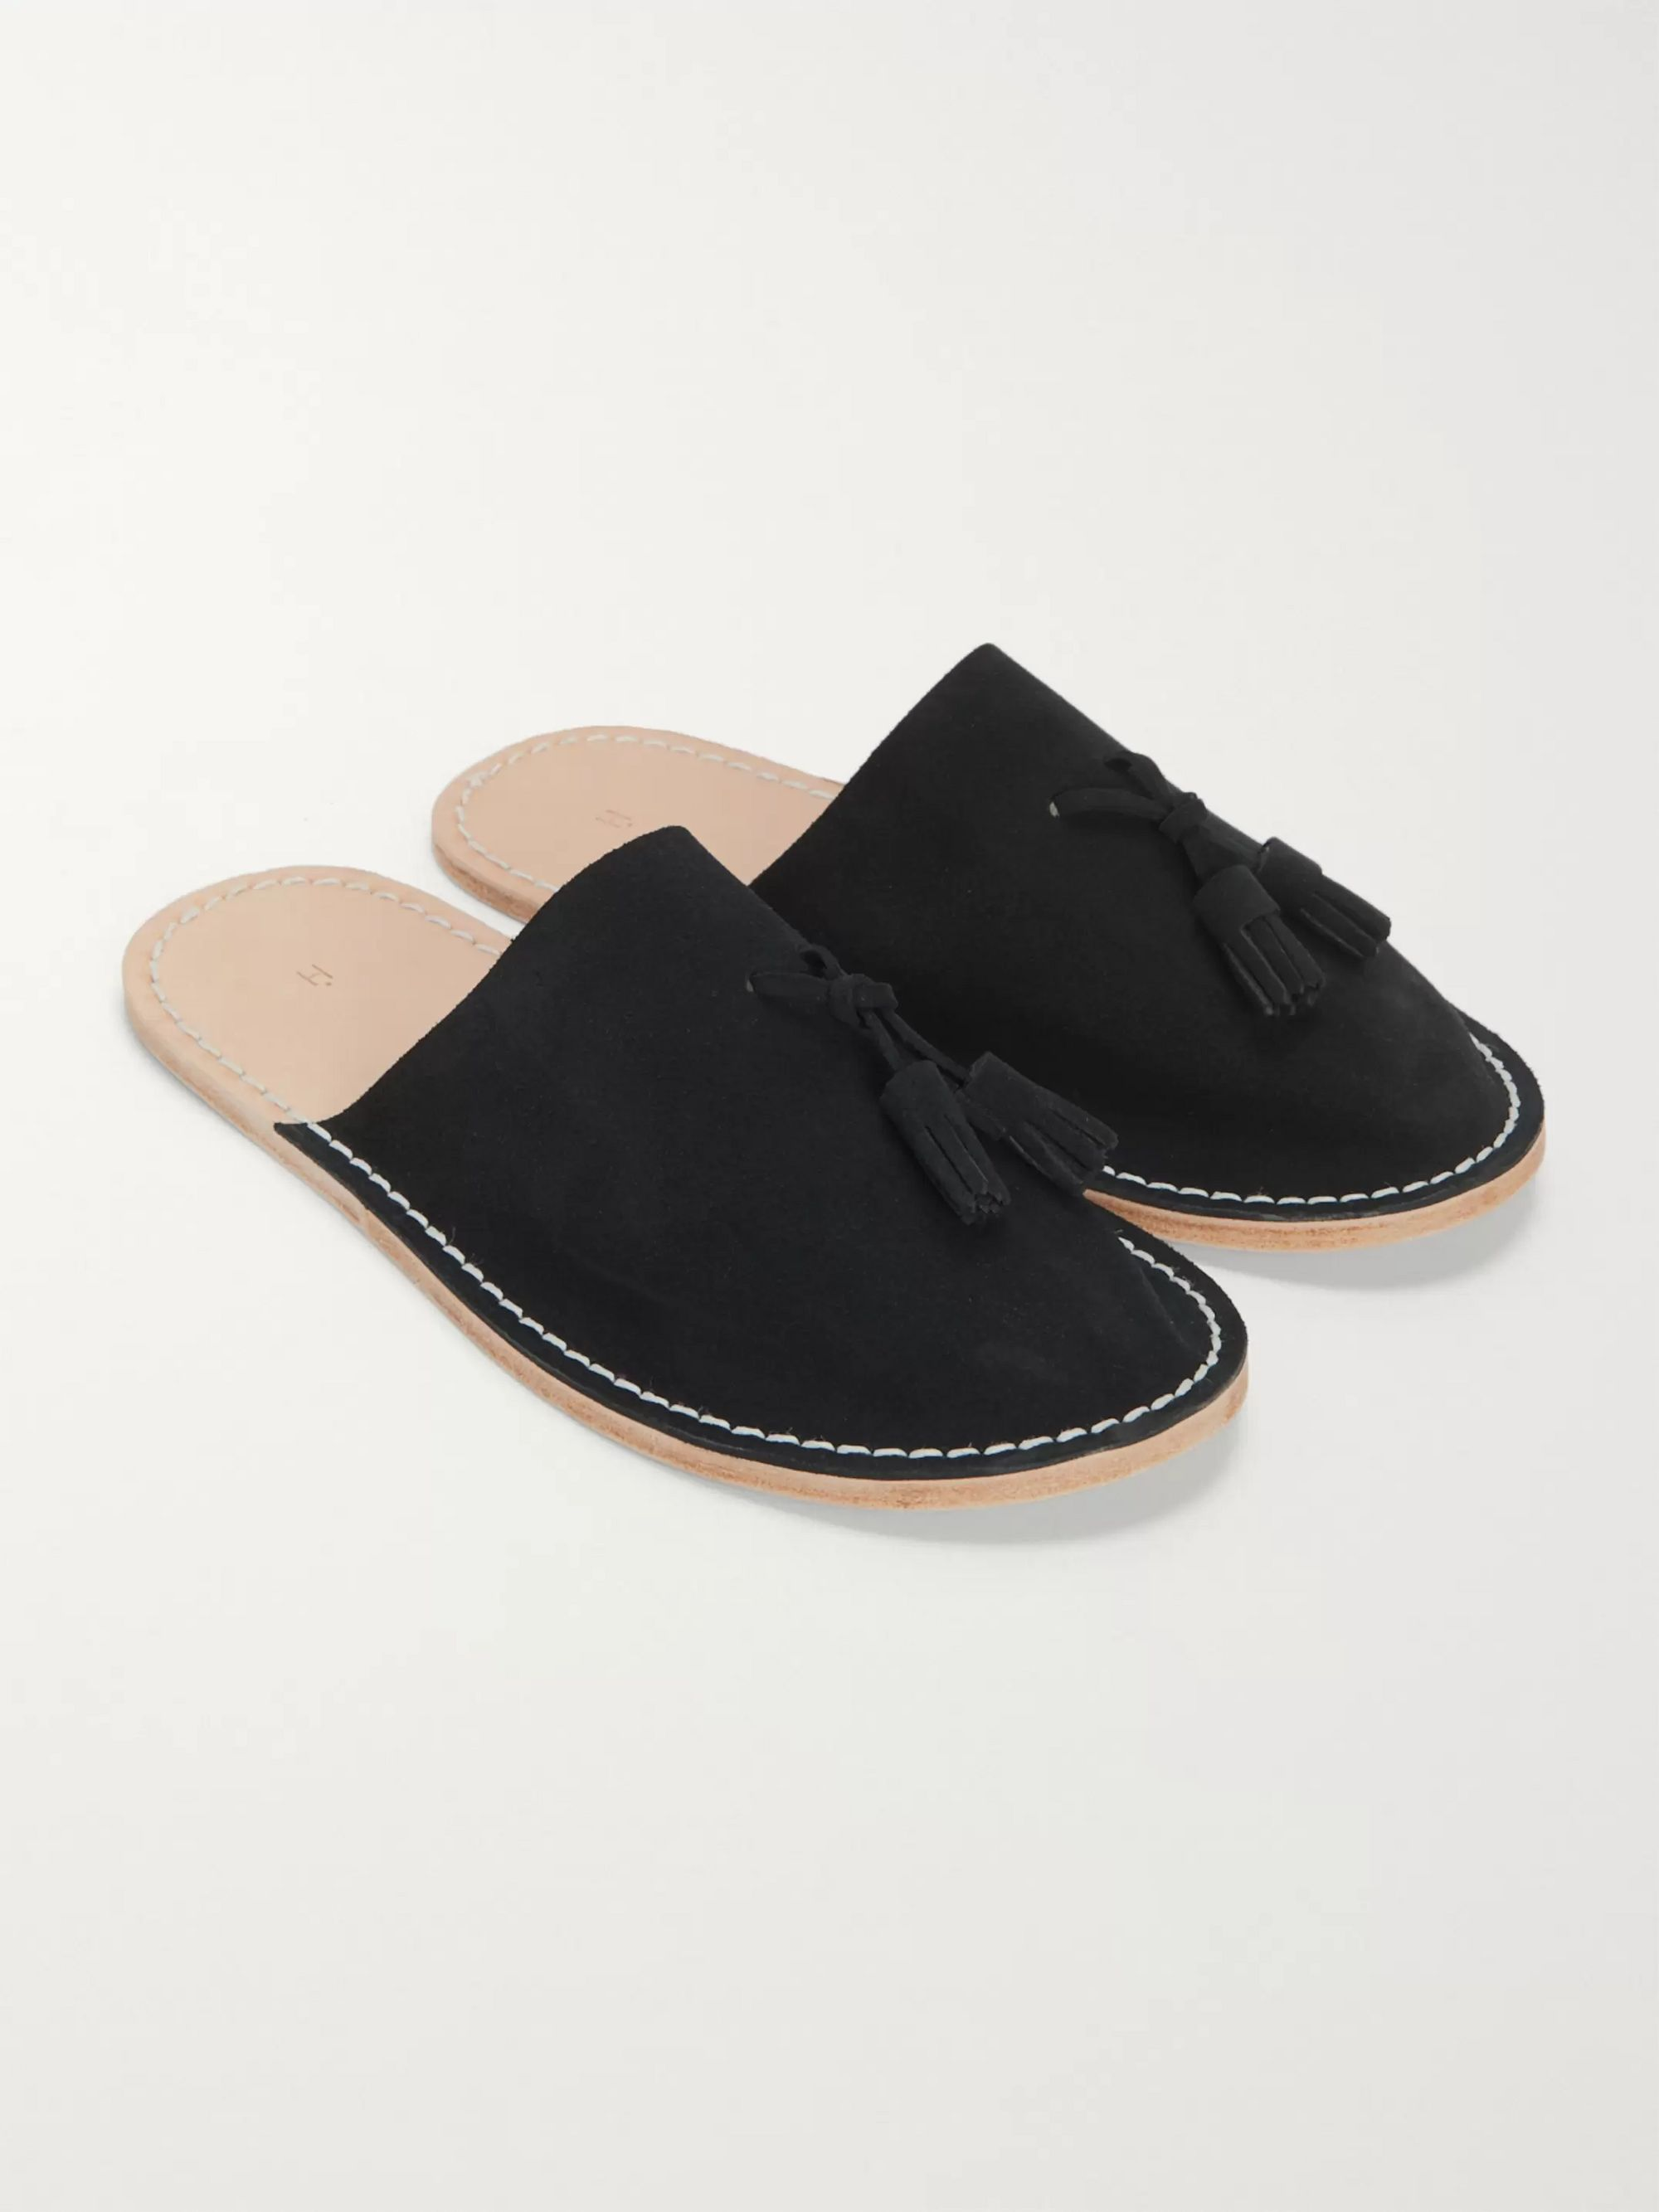 Hender Scheme Suede Tasselled Backless Slippers